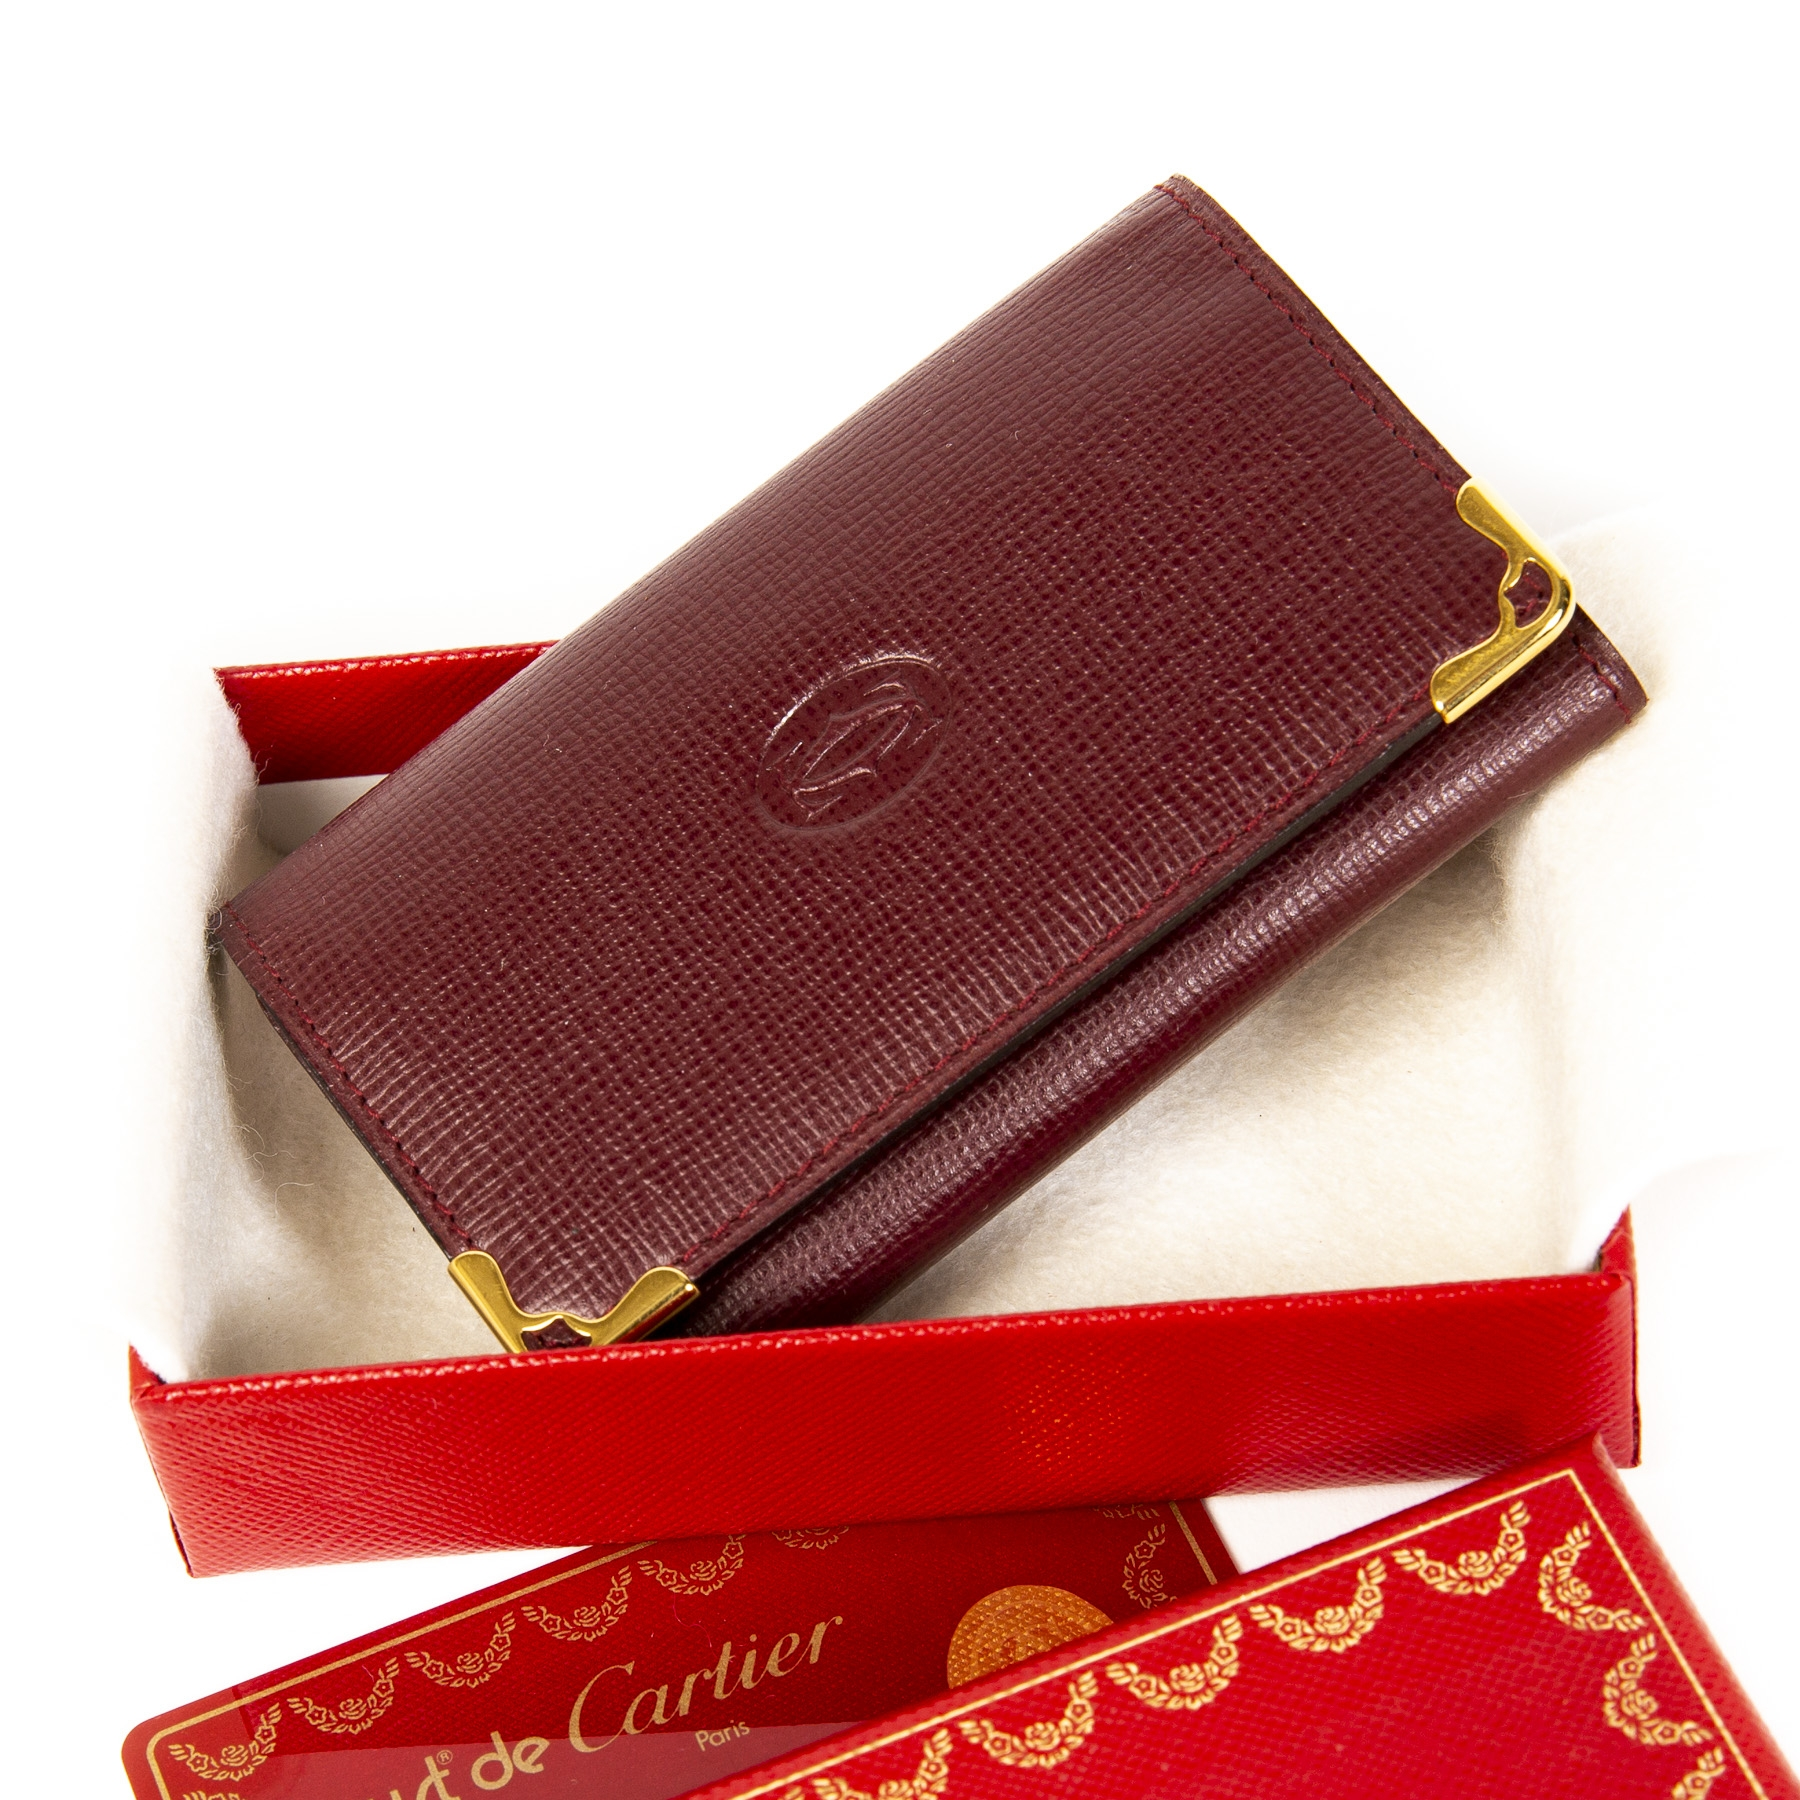 Cartier Burgundy Leather Key Holder